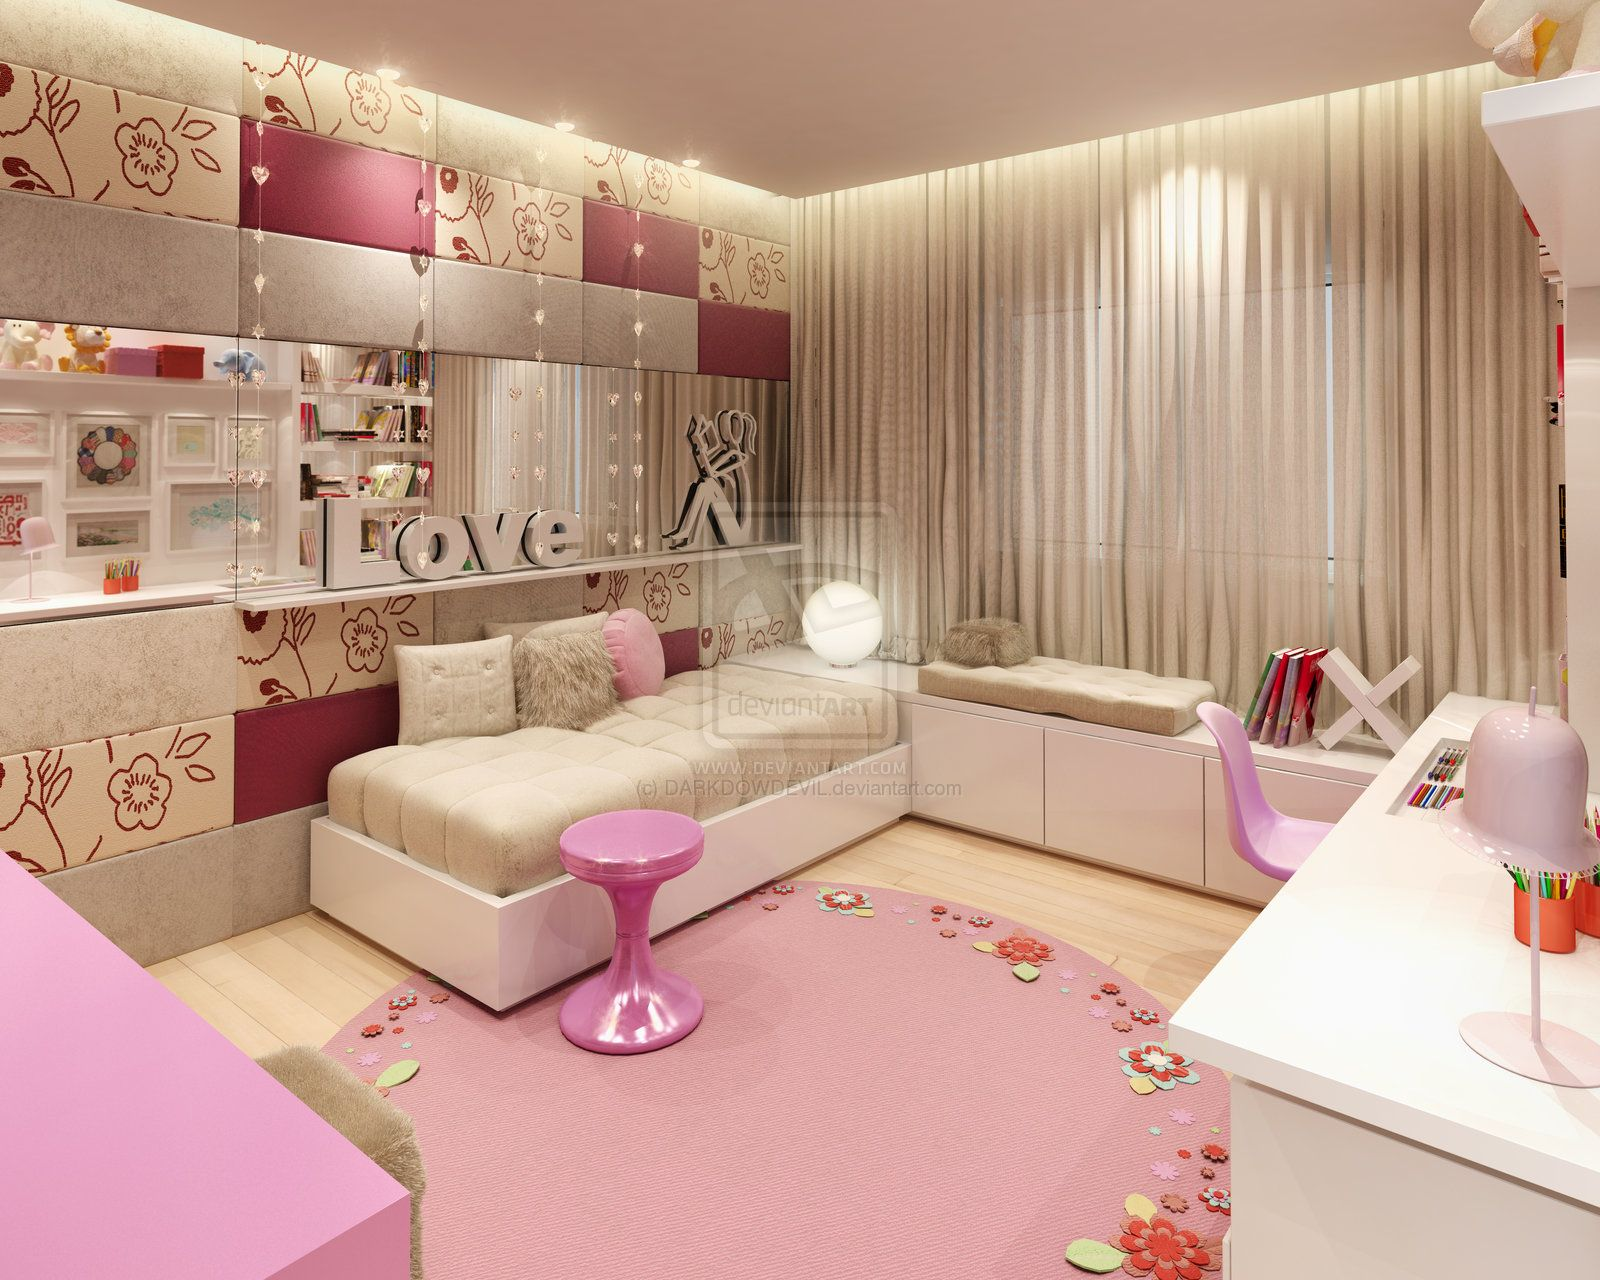 Girl Bedroom Designs 30 Dream Interior Design Ideas For Teenage Girl's Rooms  Bedrooms